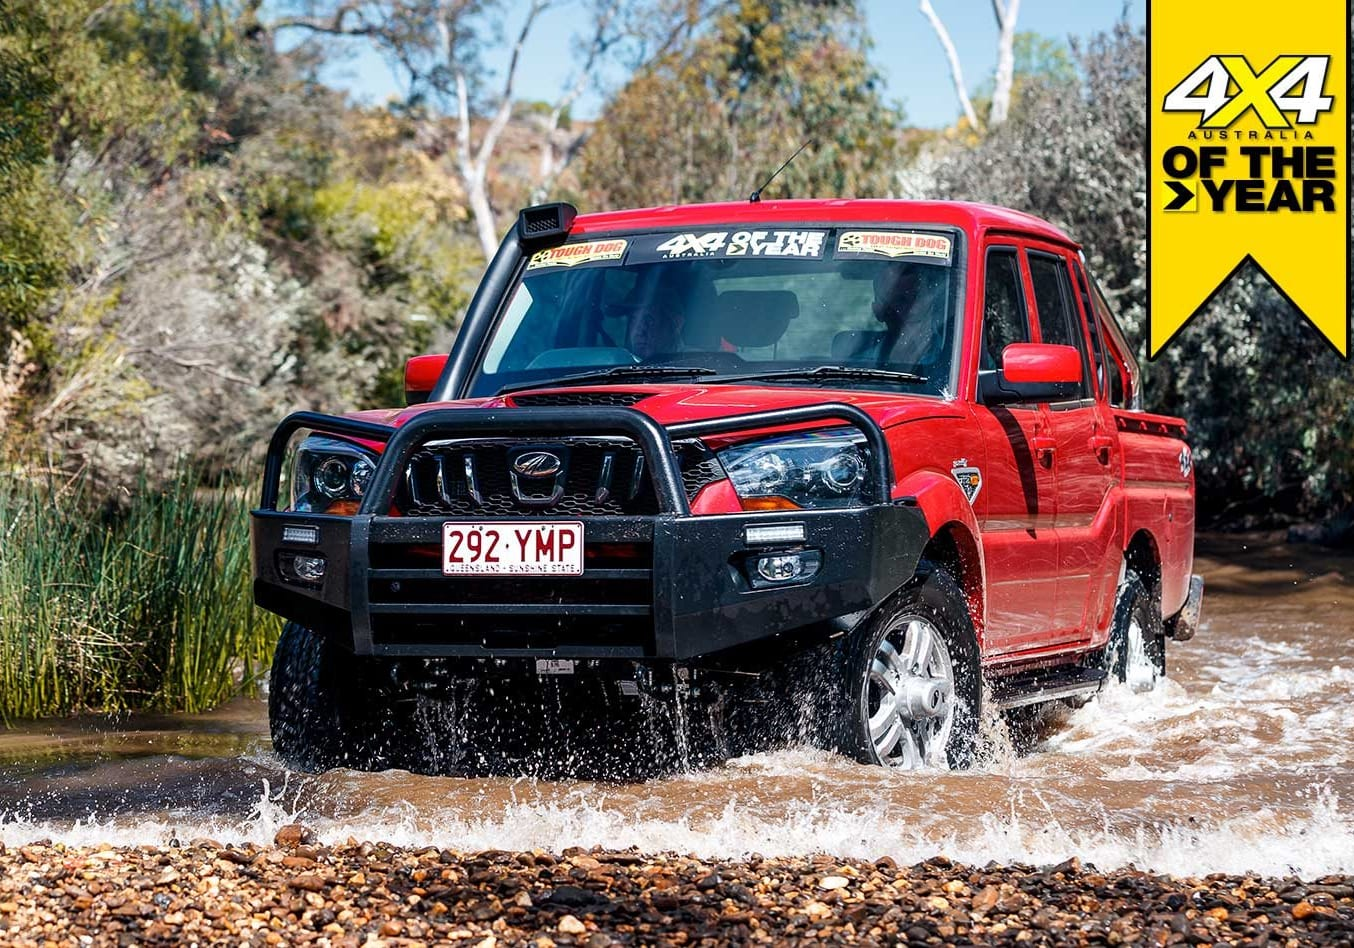 Mahindra Pik-Up S10 2019 4x4 of the Year contender